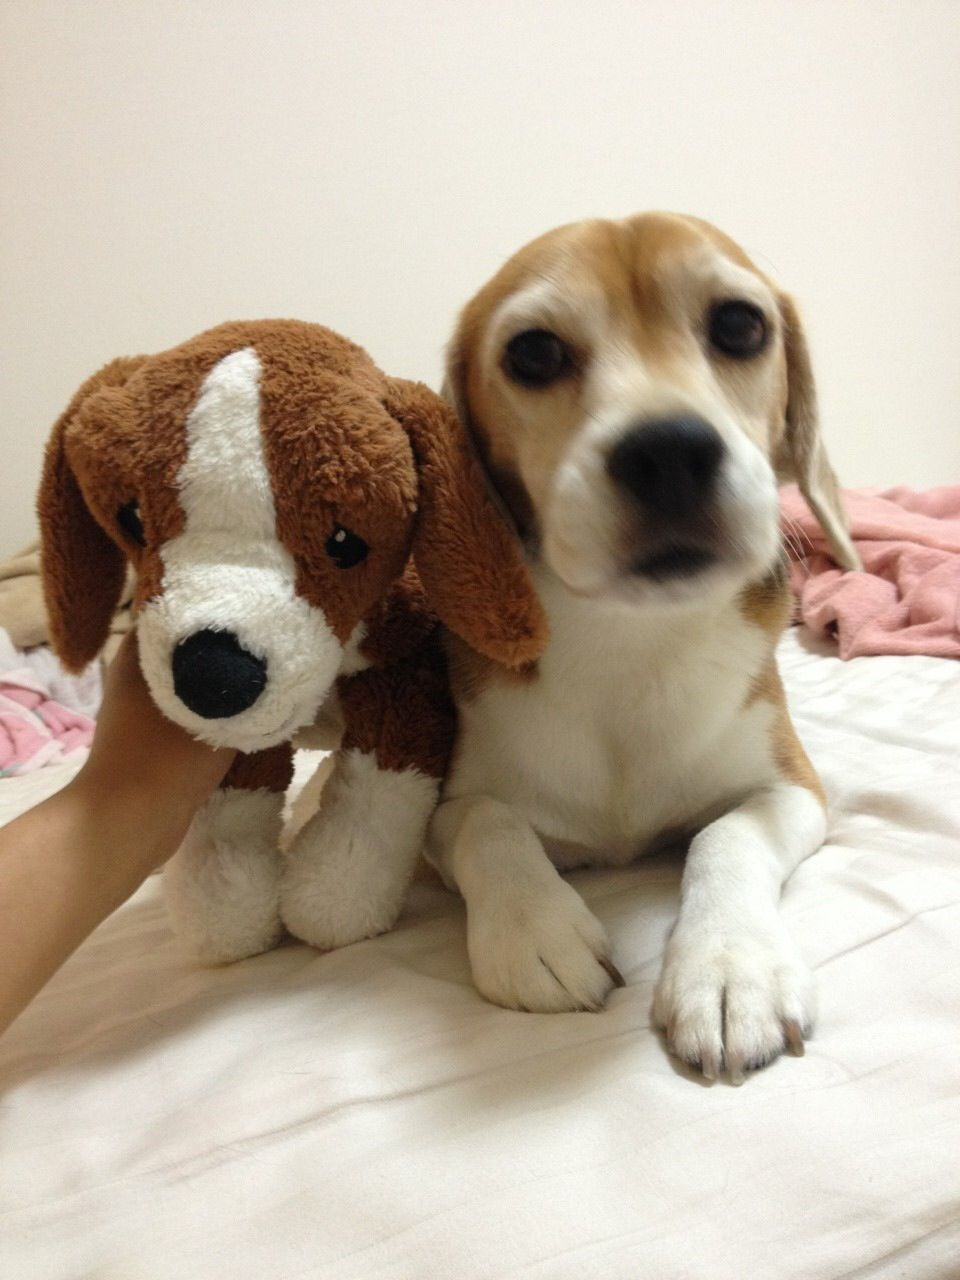 With His Little Bro Ikea Beagle Doggy